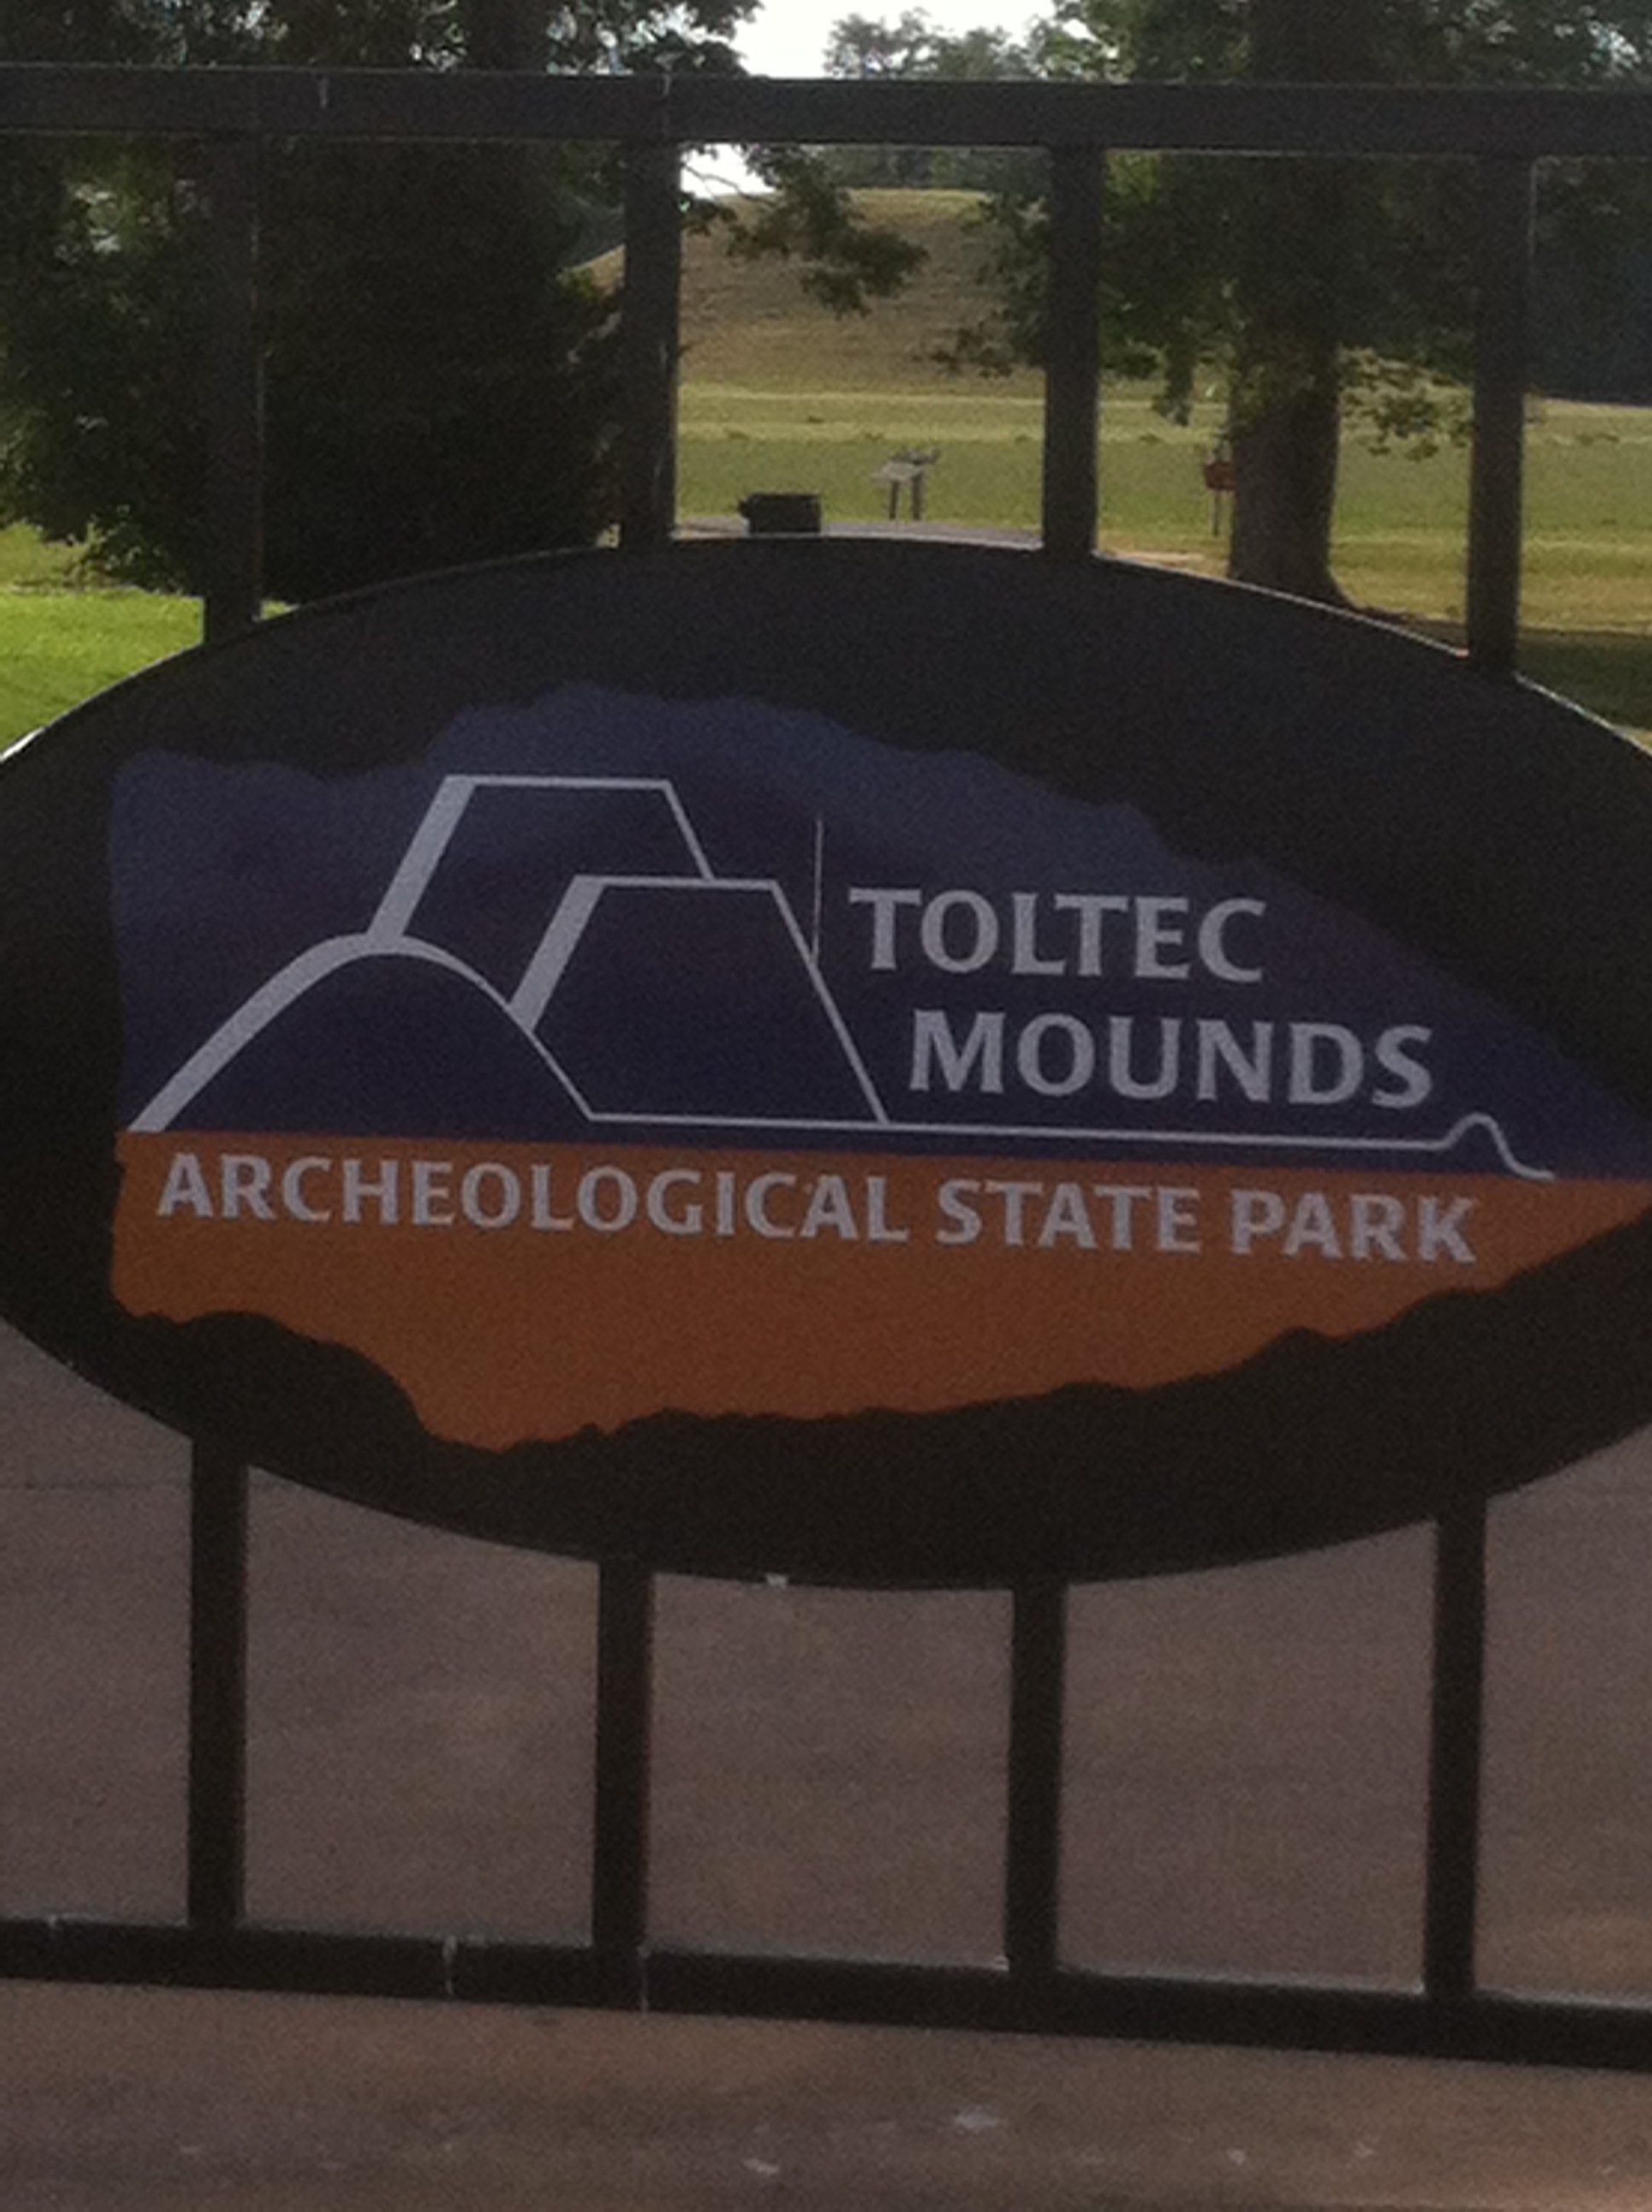 Toltec Mounds State Park